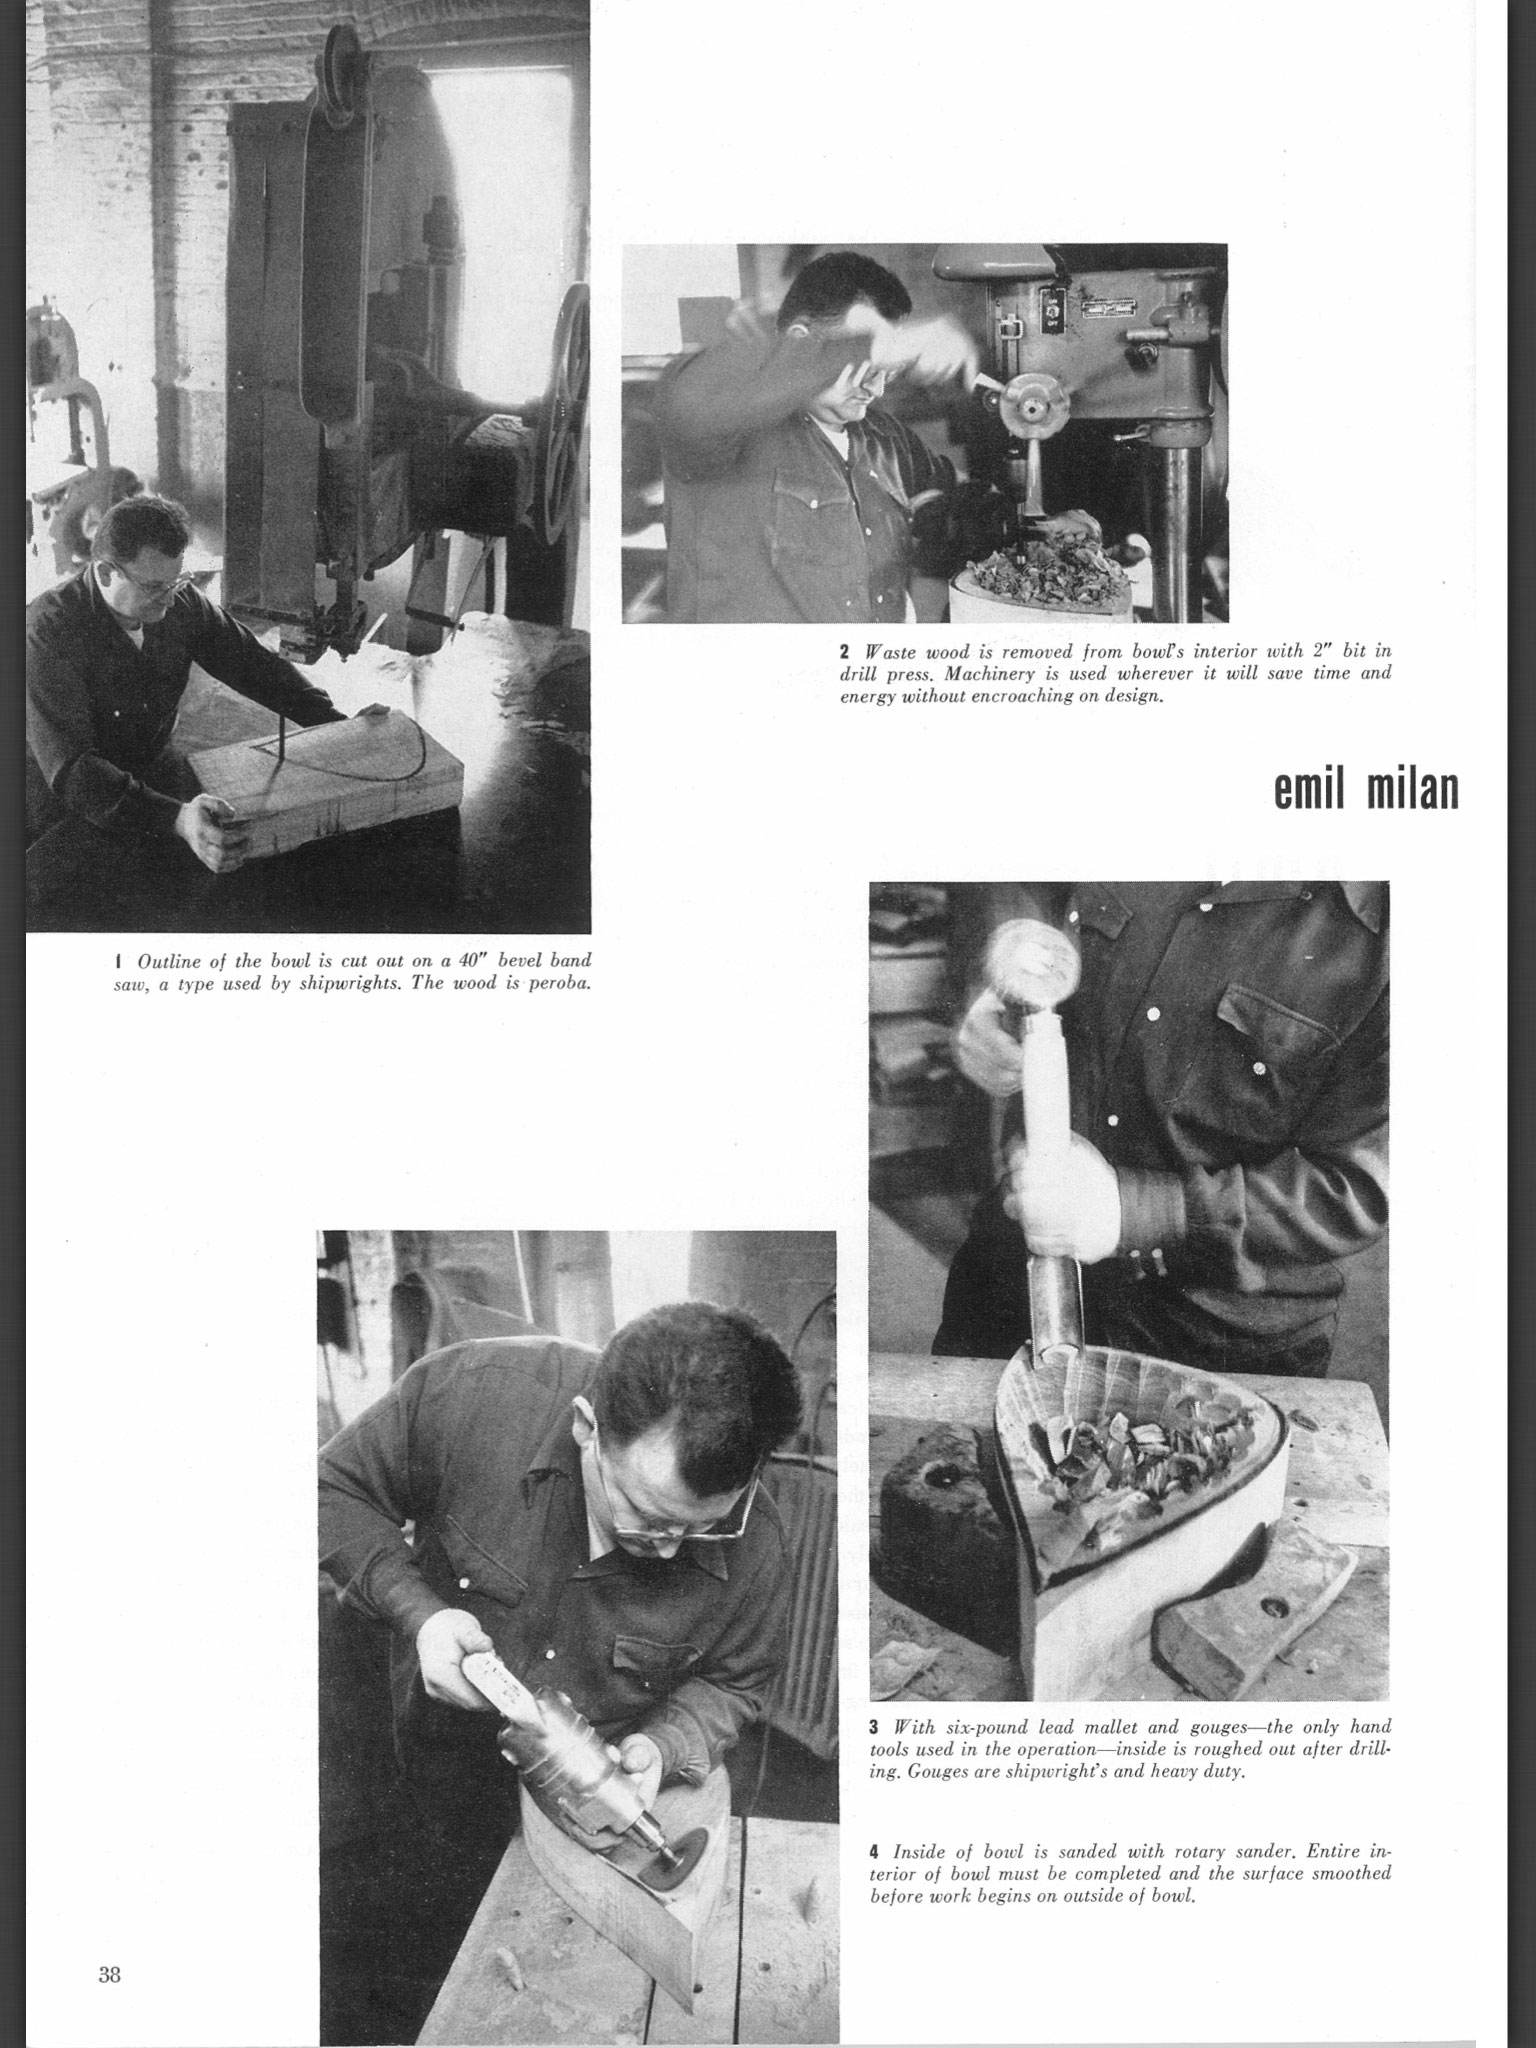 Photos of Emil's work process in the July 1957 issue of the ACC's  Craft Horizons  magazine.  Photos by Raymond Jacobs, used by permission. Page layout courtesy of the American Craft Council.